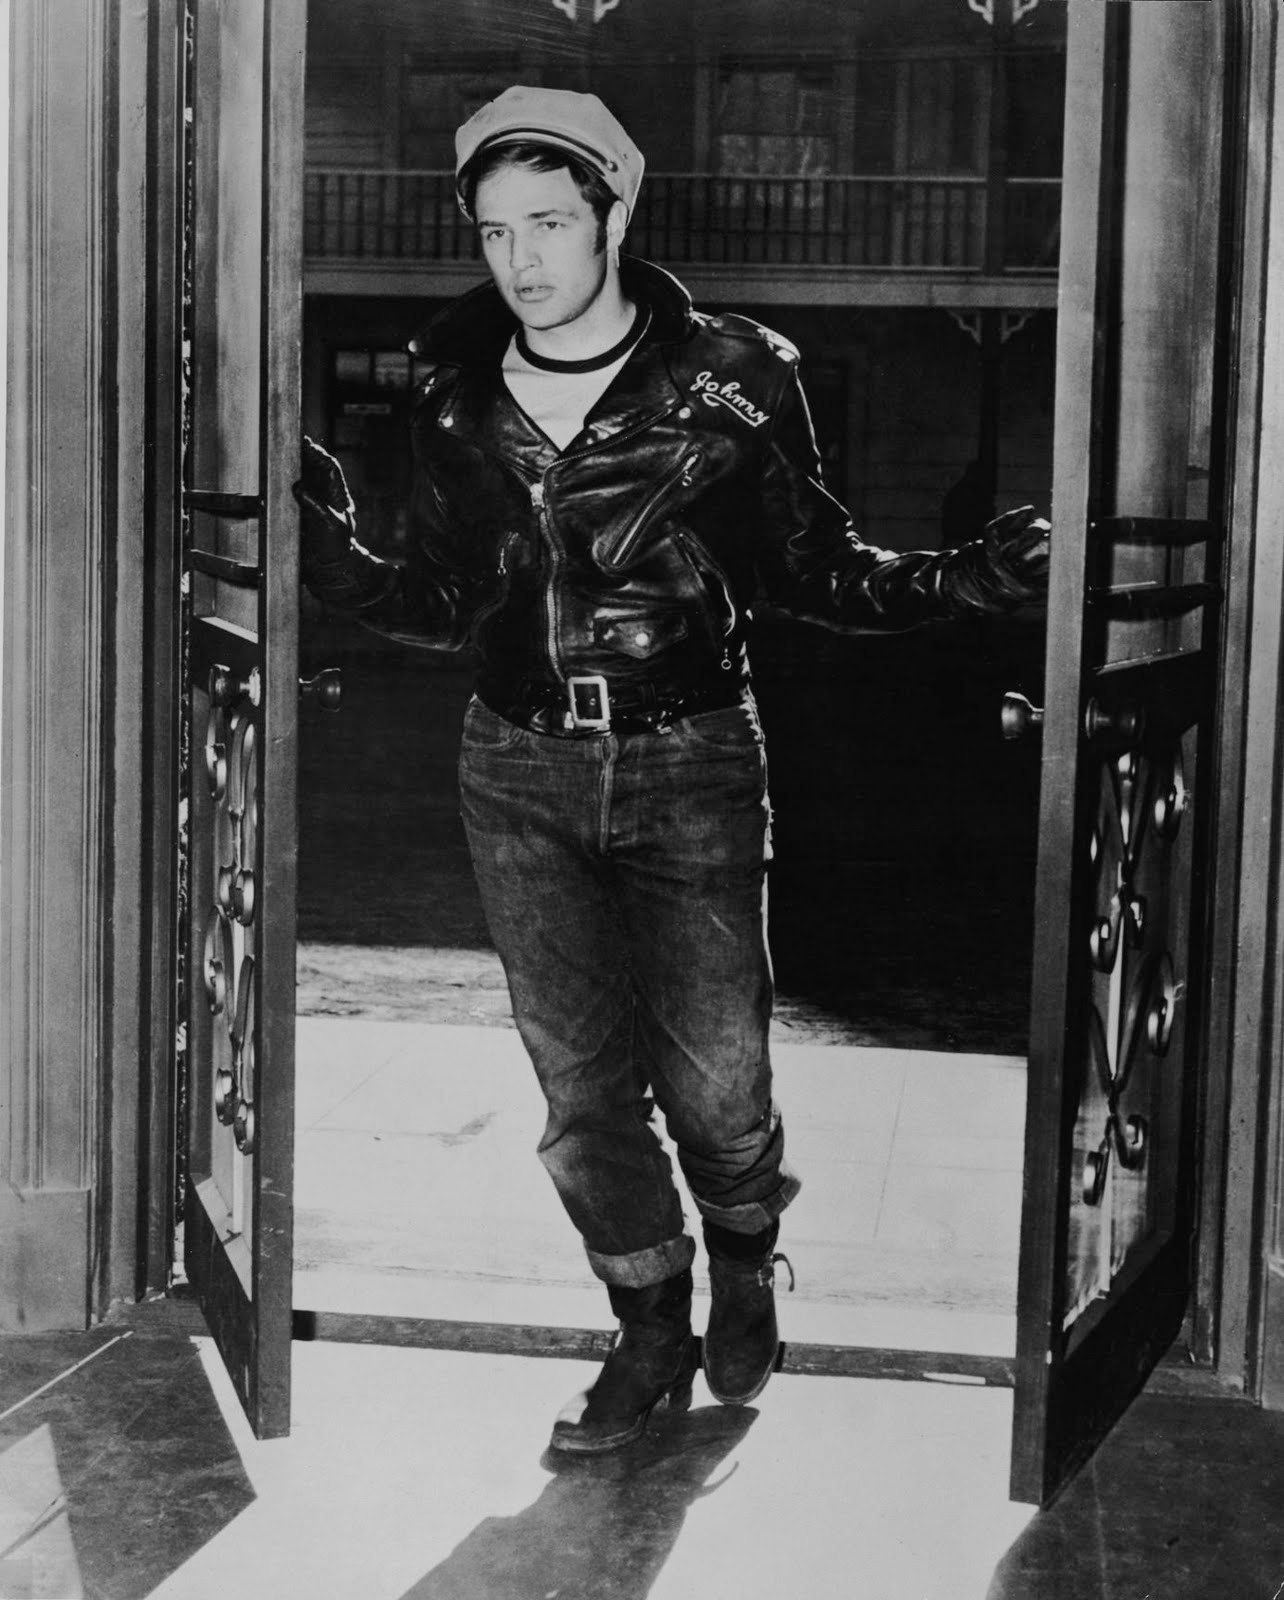 When you think of biker leather jackets and men in leather jackets in the movies one of the first films that probably springs to mind is the classic film, The Wild One, starring a young, ruggedly handsome Marlon Brando.